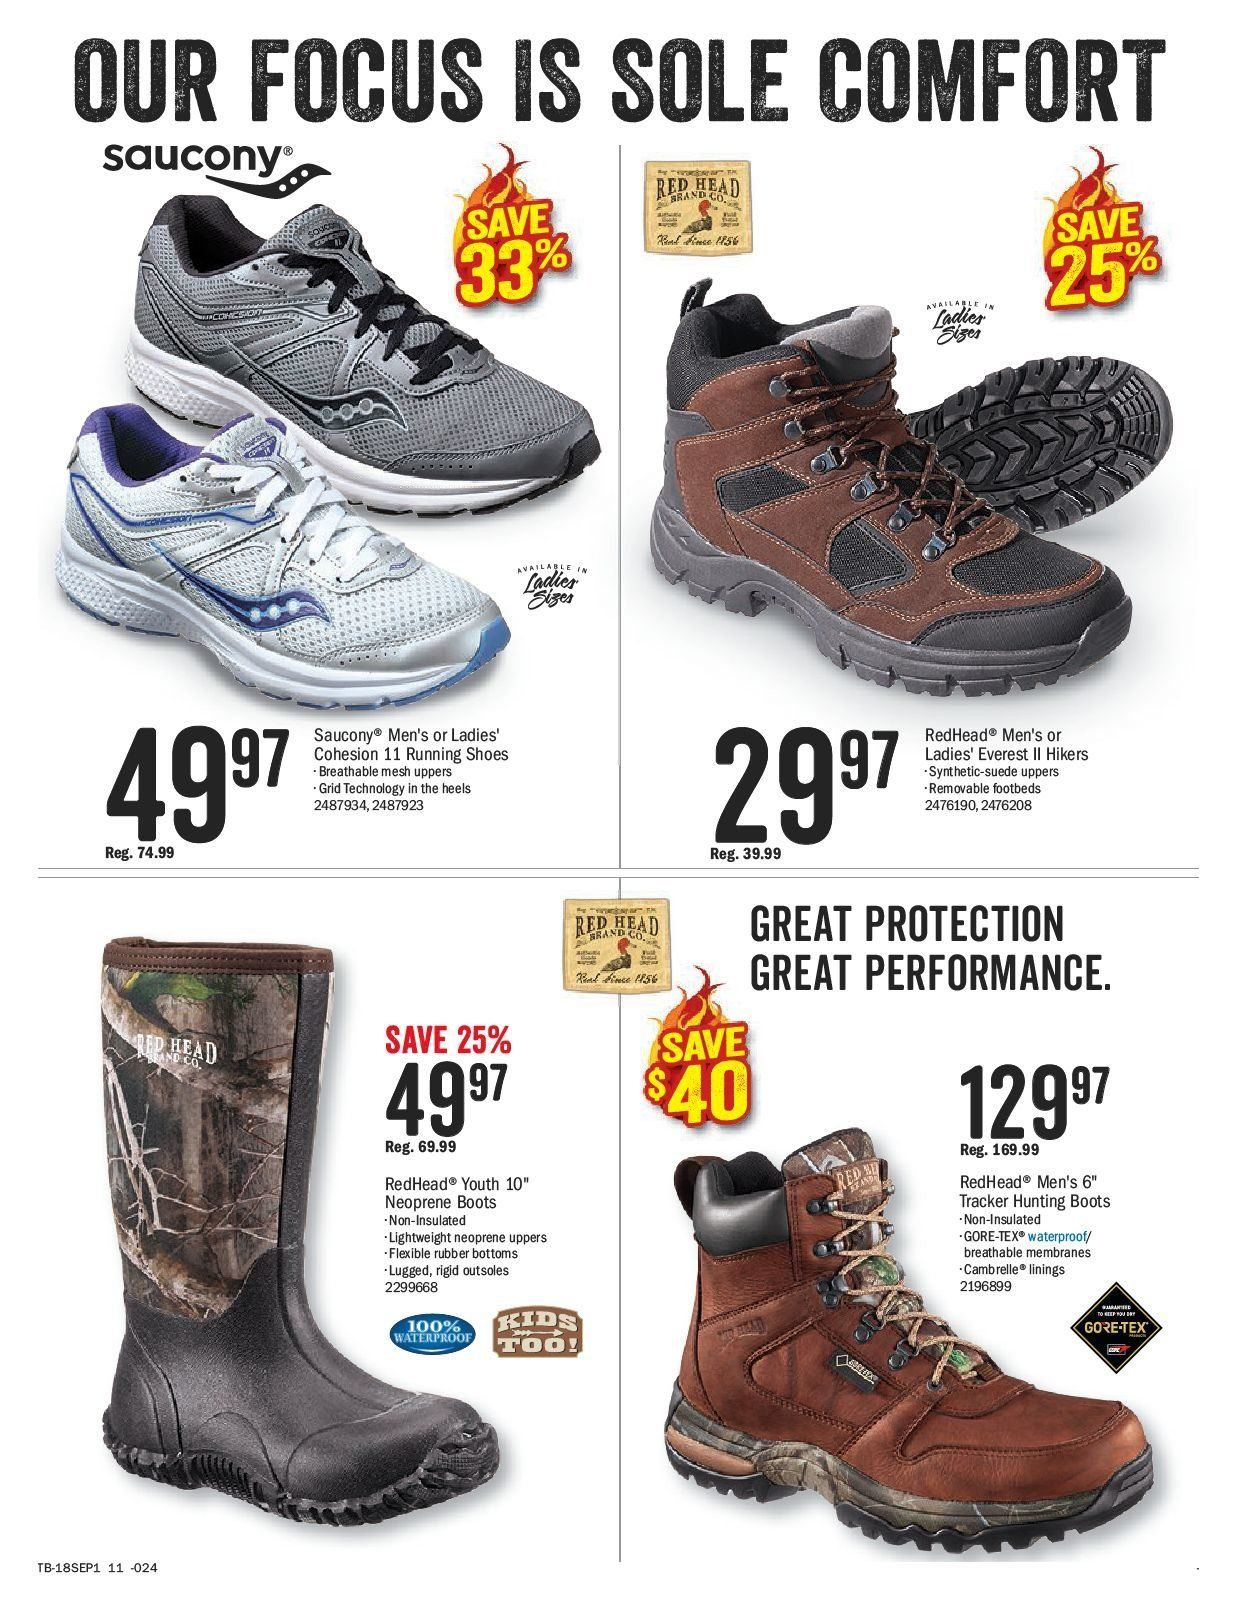 Bass Pro Shops Flyer  - August 27, 2018 - September 09, 2018. Page 11.